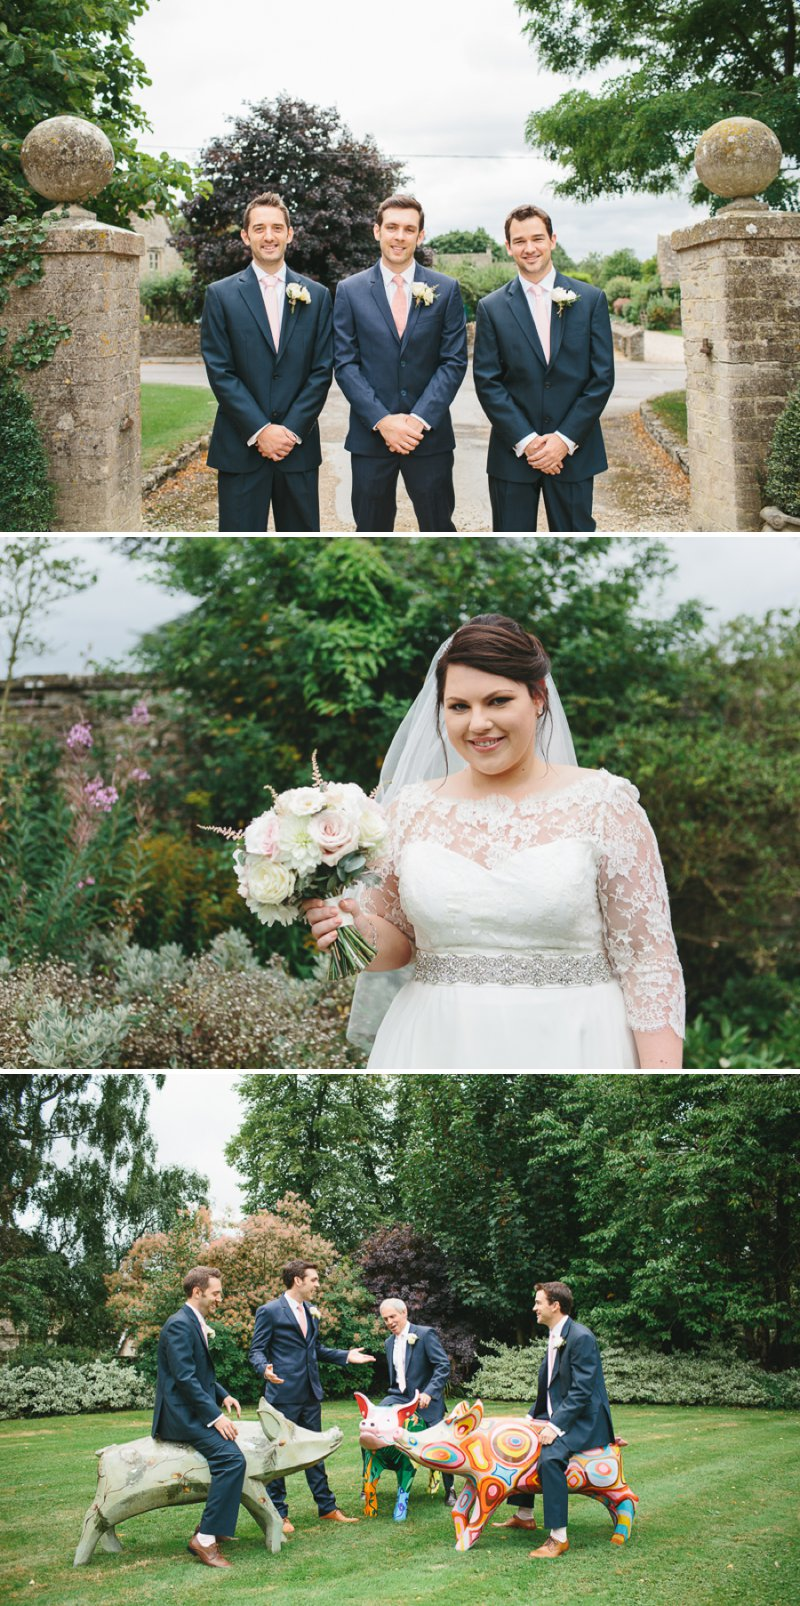 Blush Pink And Gold Glitter Themed Wedding At The Rectory Hotel With Bride In Bespoke Gown By Dana Bolton And Groom In Ted Baker Pashion Suit With Elegant Typography Across The Paper Goods And Images By Shell de Mar Photography 3